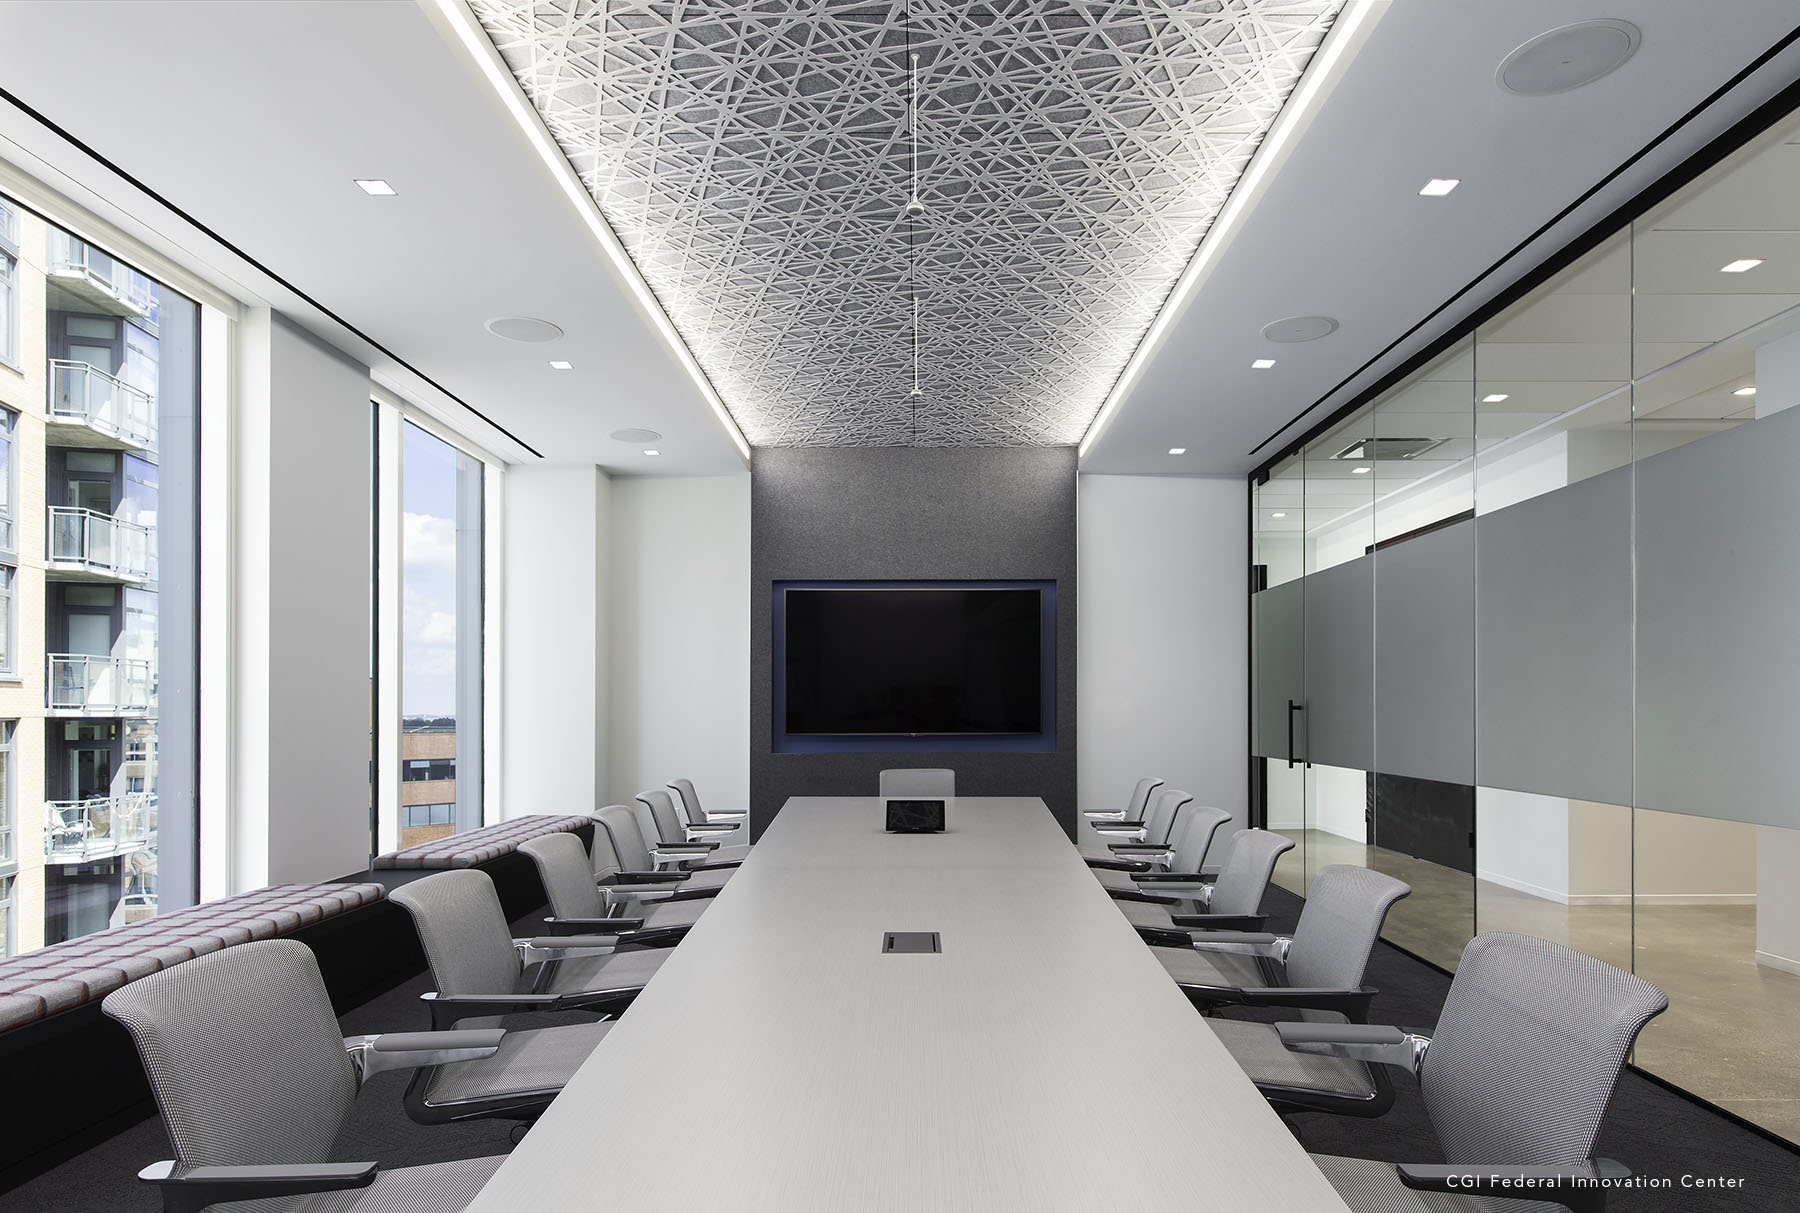 Trace® Straight installed with cove lighting in conference room.